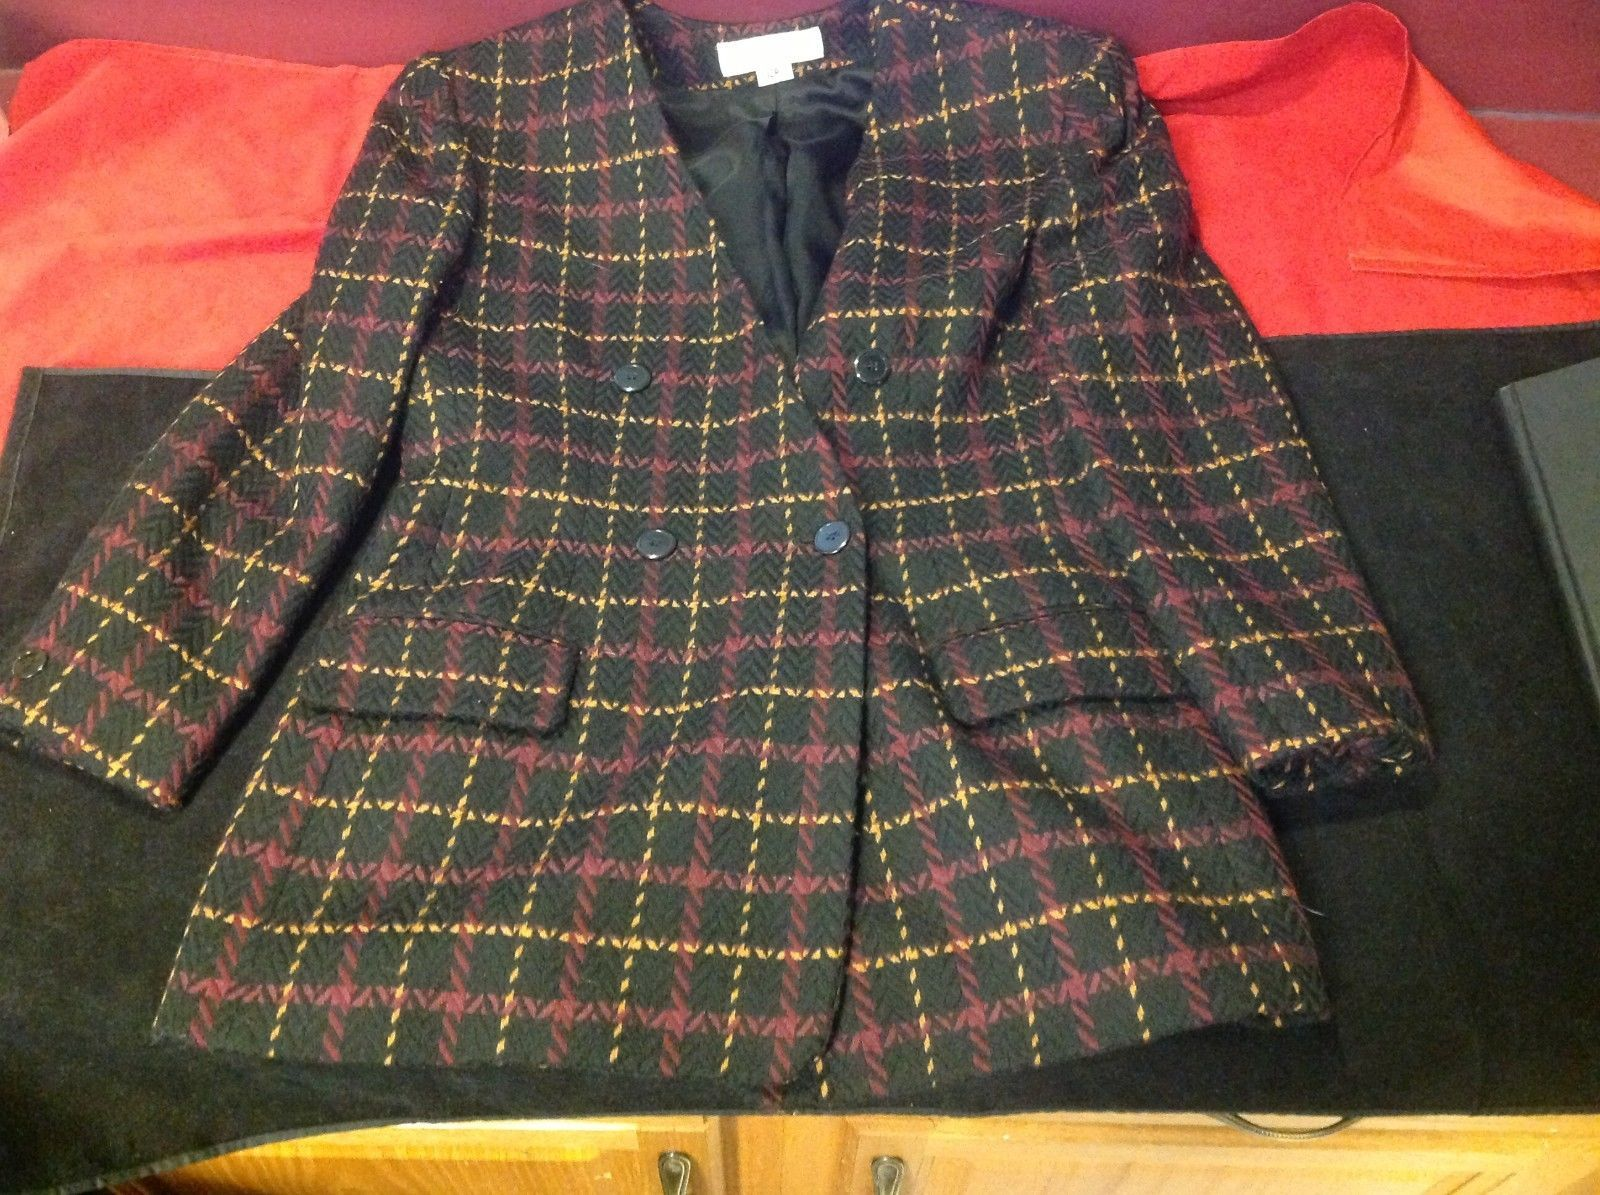 jones new york size 12 color blue with yellow and maroon lines coat blazer woman